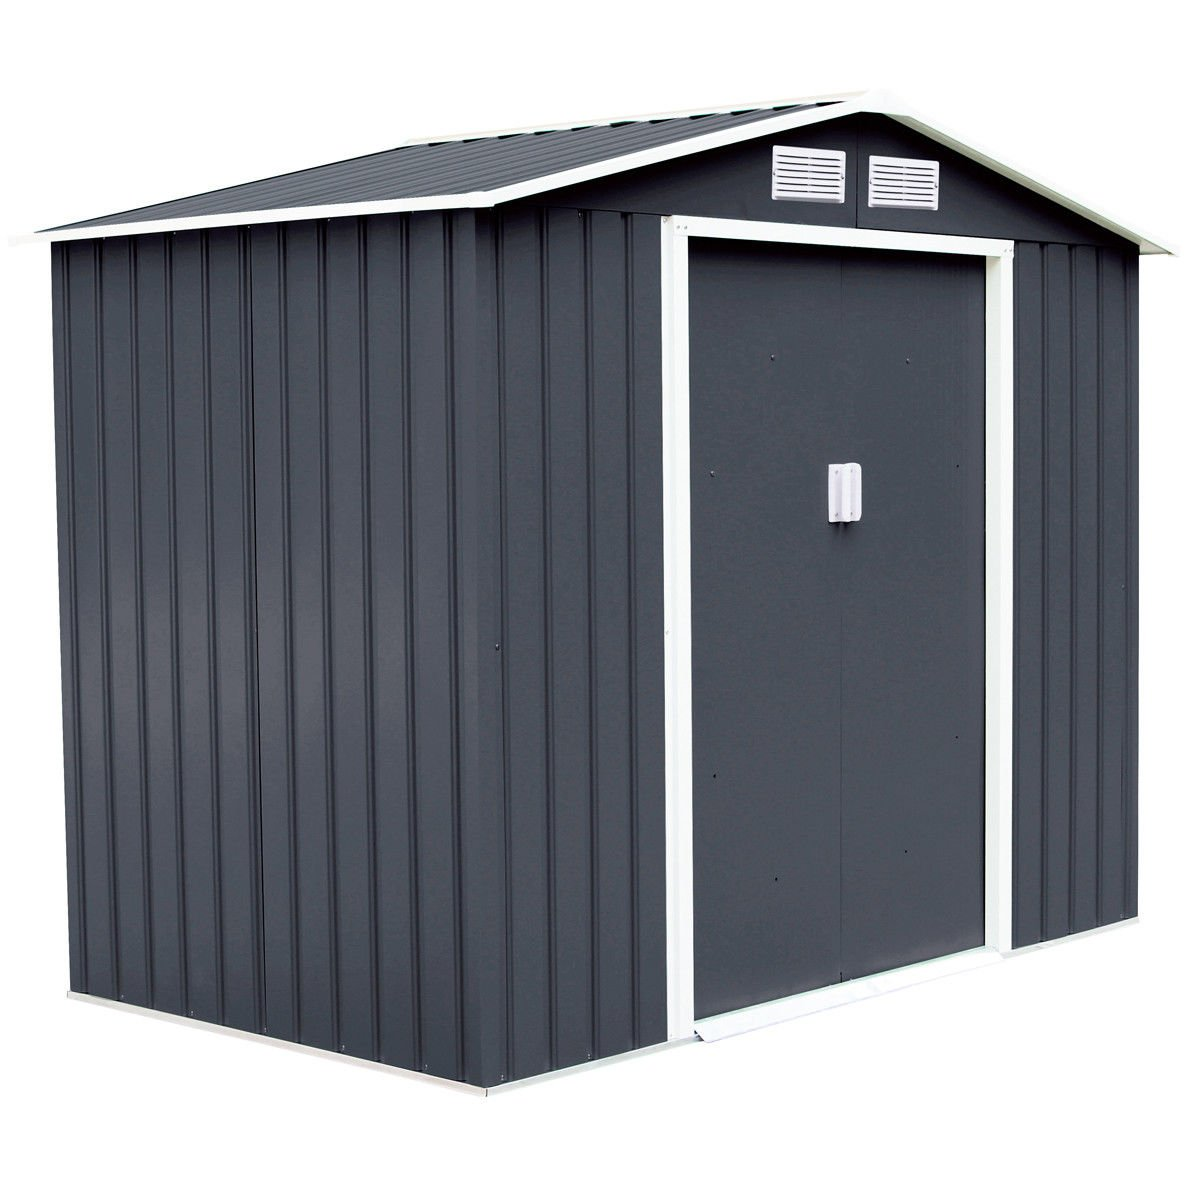 Goplus Outdoor Storage Shed Sliding Door Garden Tool House 9' X 6' (Gray) by Goplus